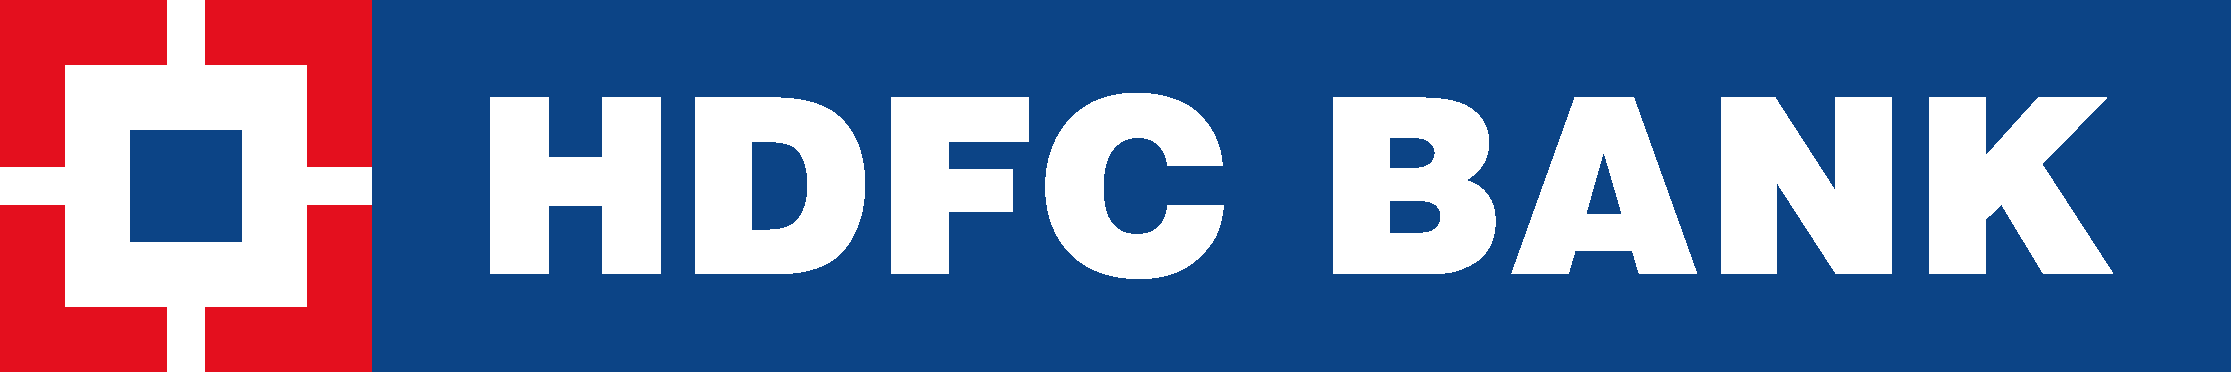 HDFC Bank Logo png